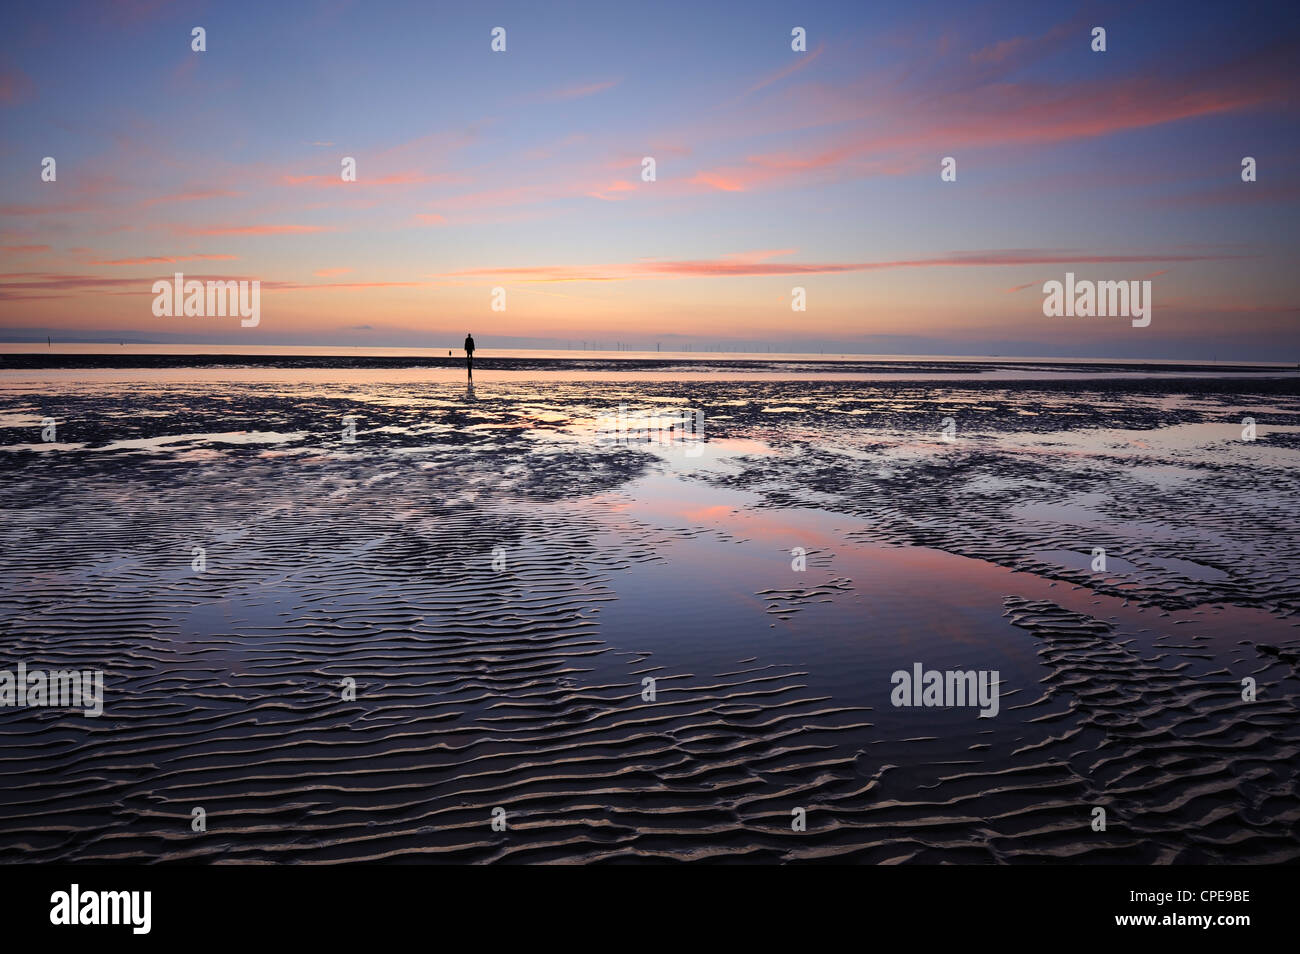 Sunset, Crosby Beach, Merseyside, England, United Kingdom, Europe - Stock Image